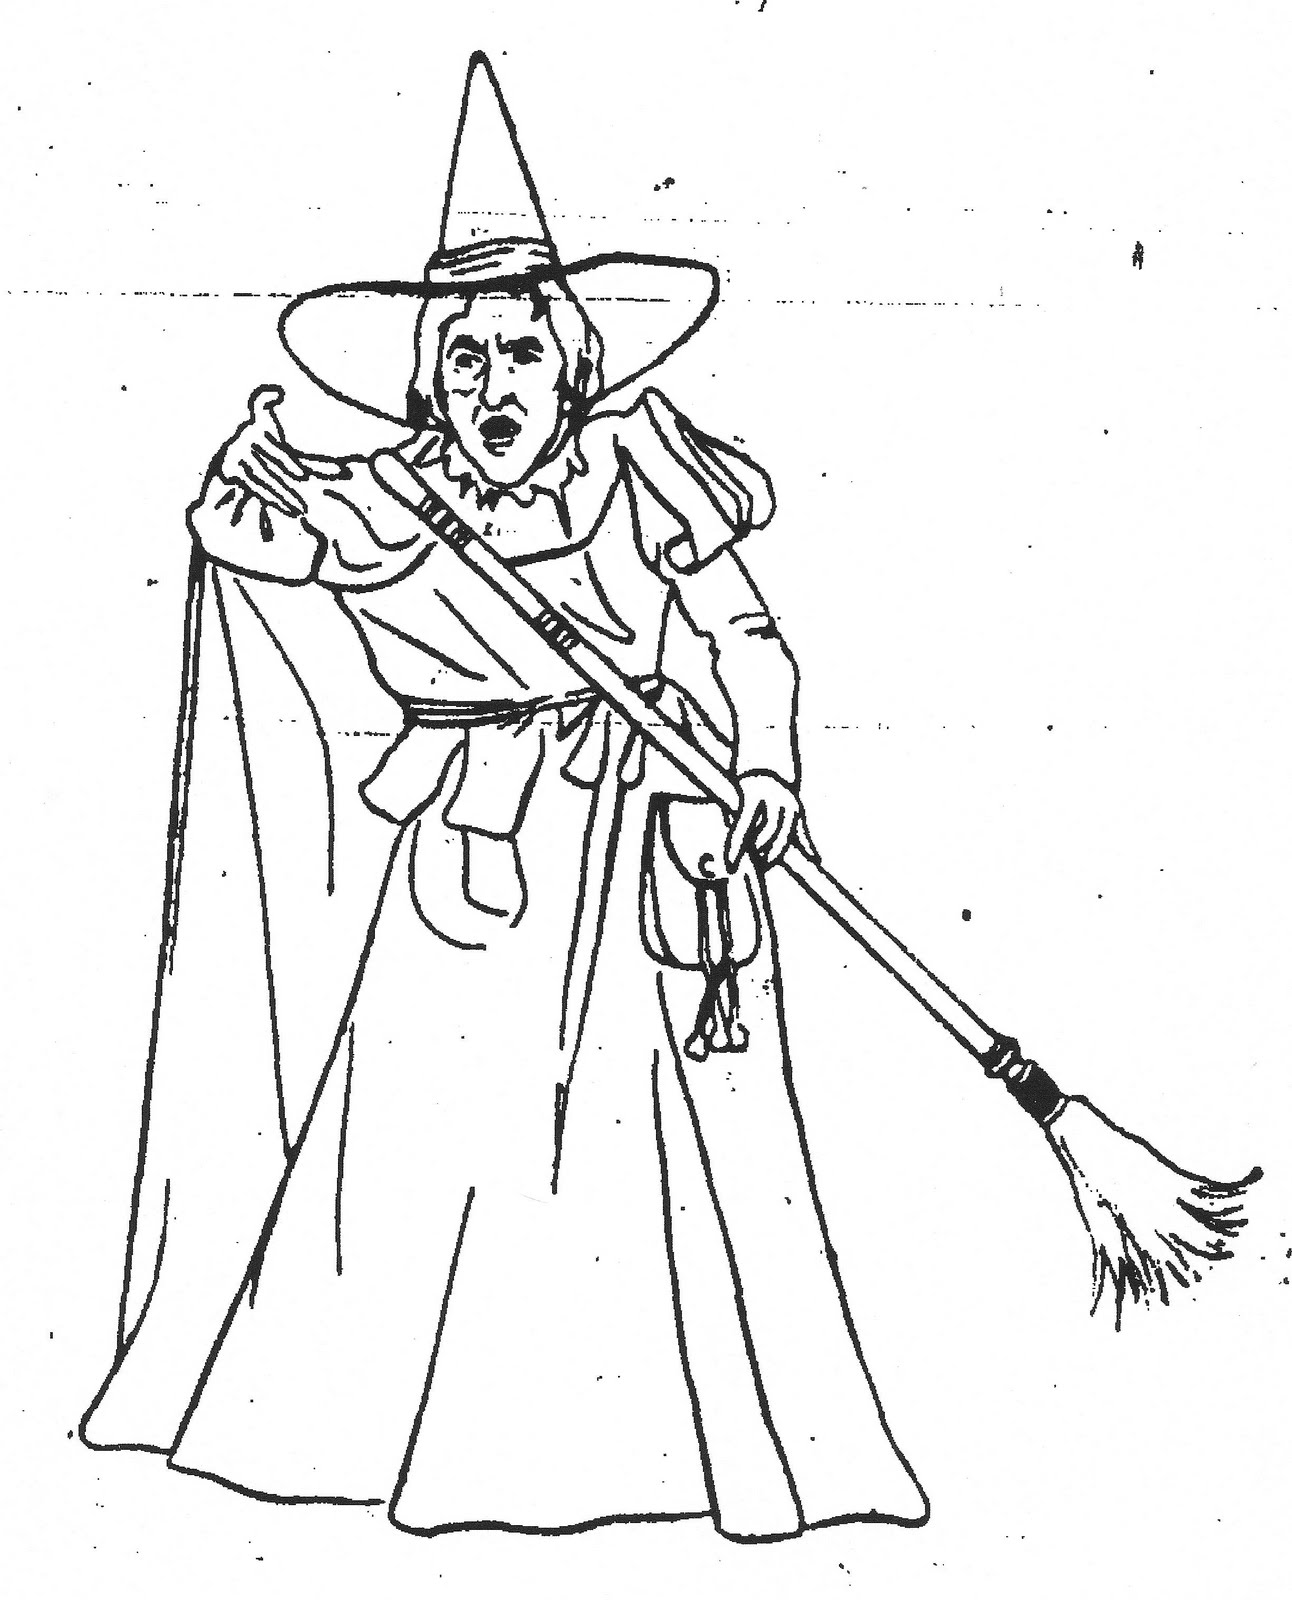 1292x1600 Wizard Of Oz Coloring Pages Printable In The Wizard Of Oz. This